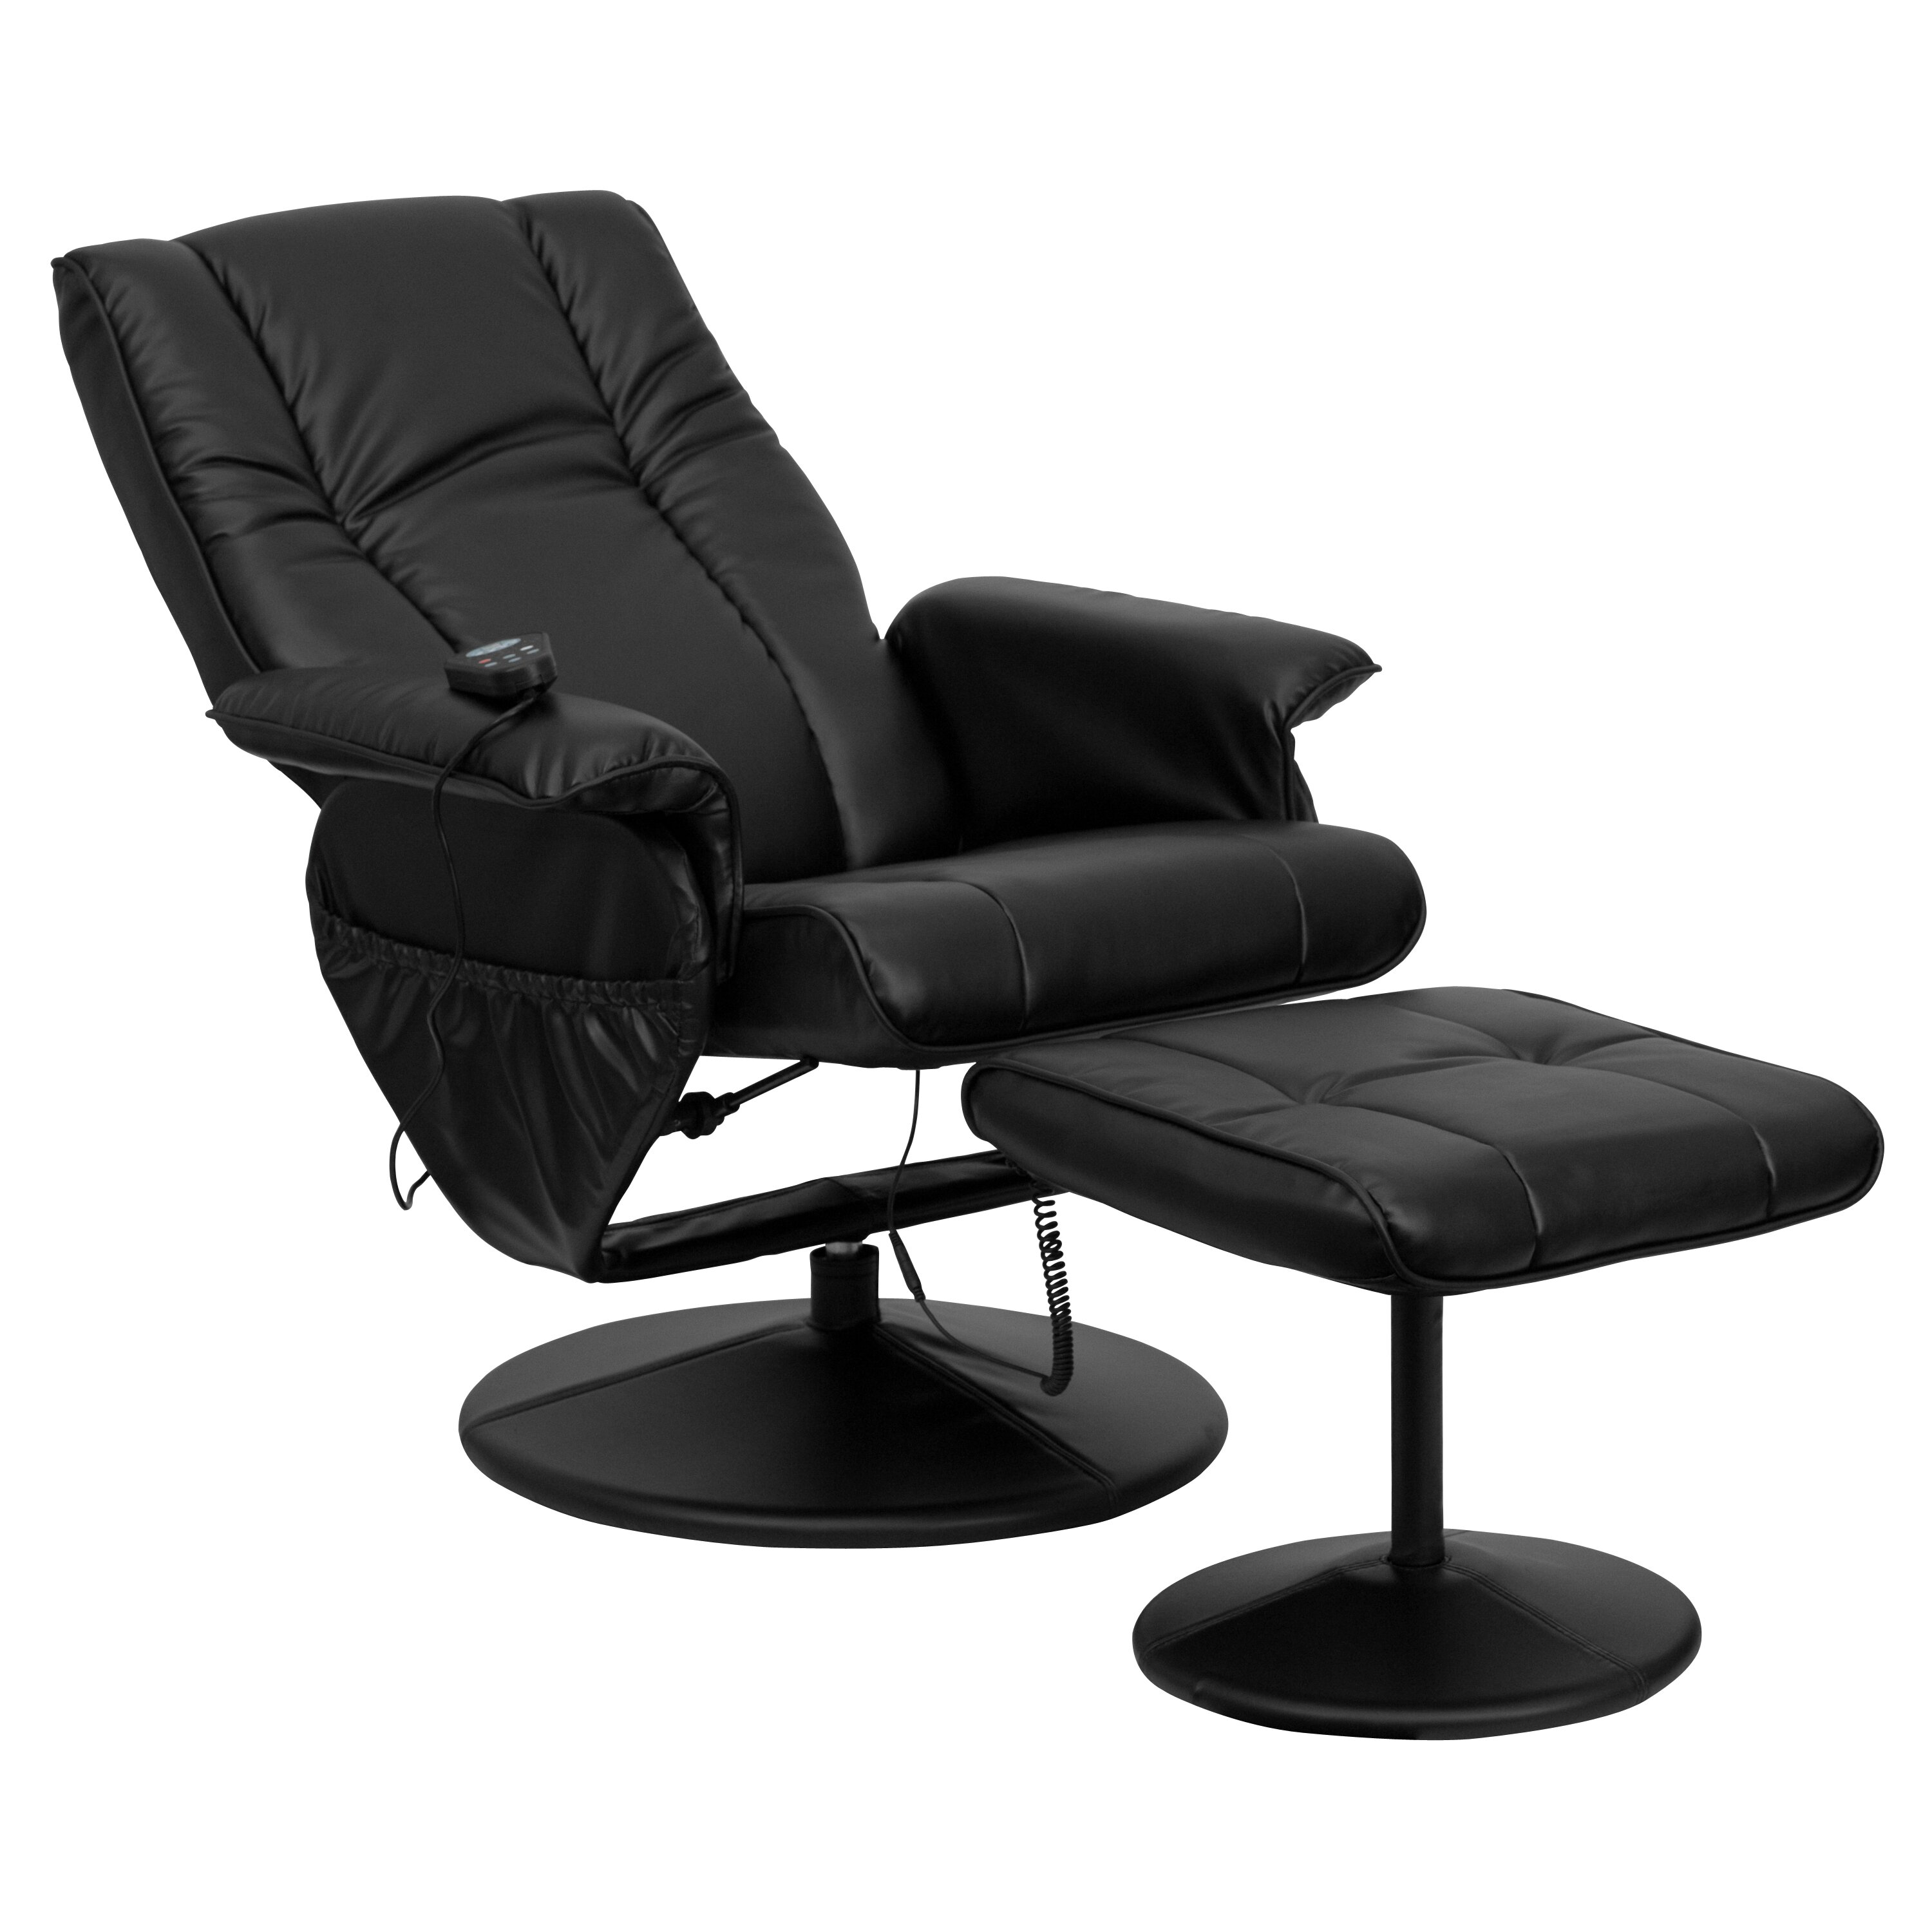 Symple Stuff Leather Heated Reclining